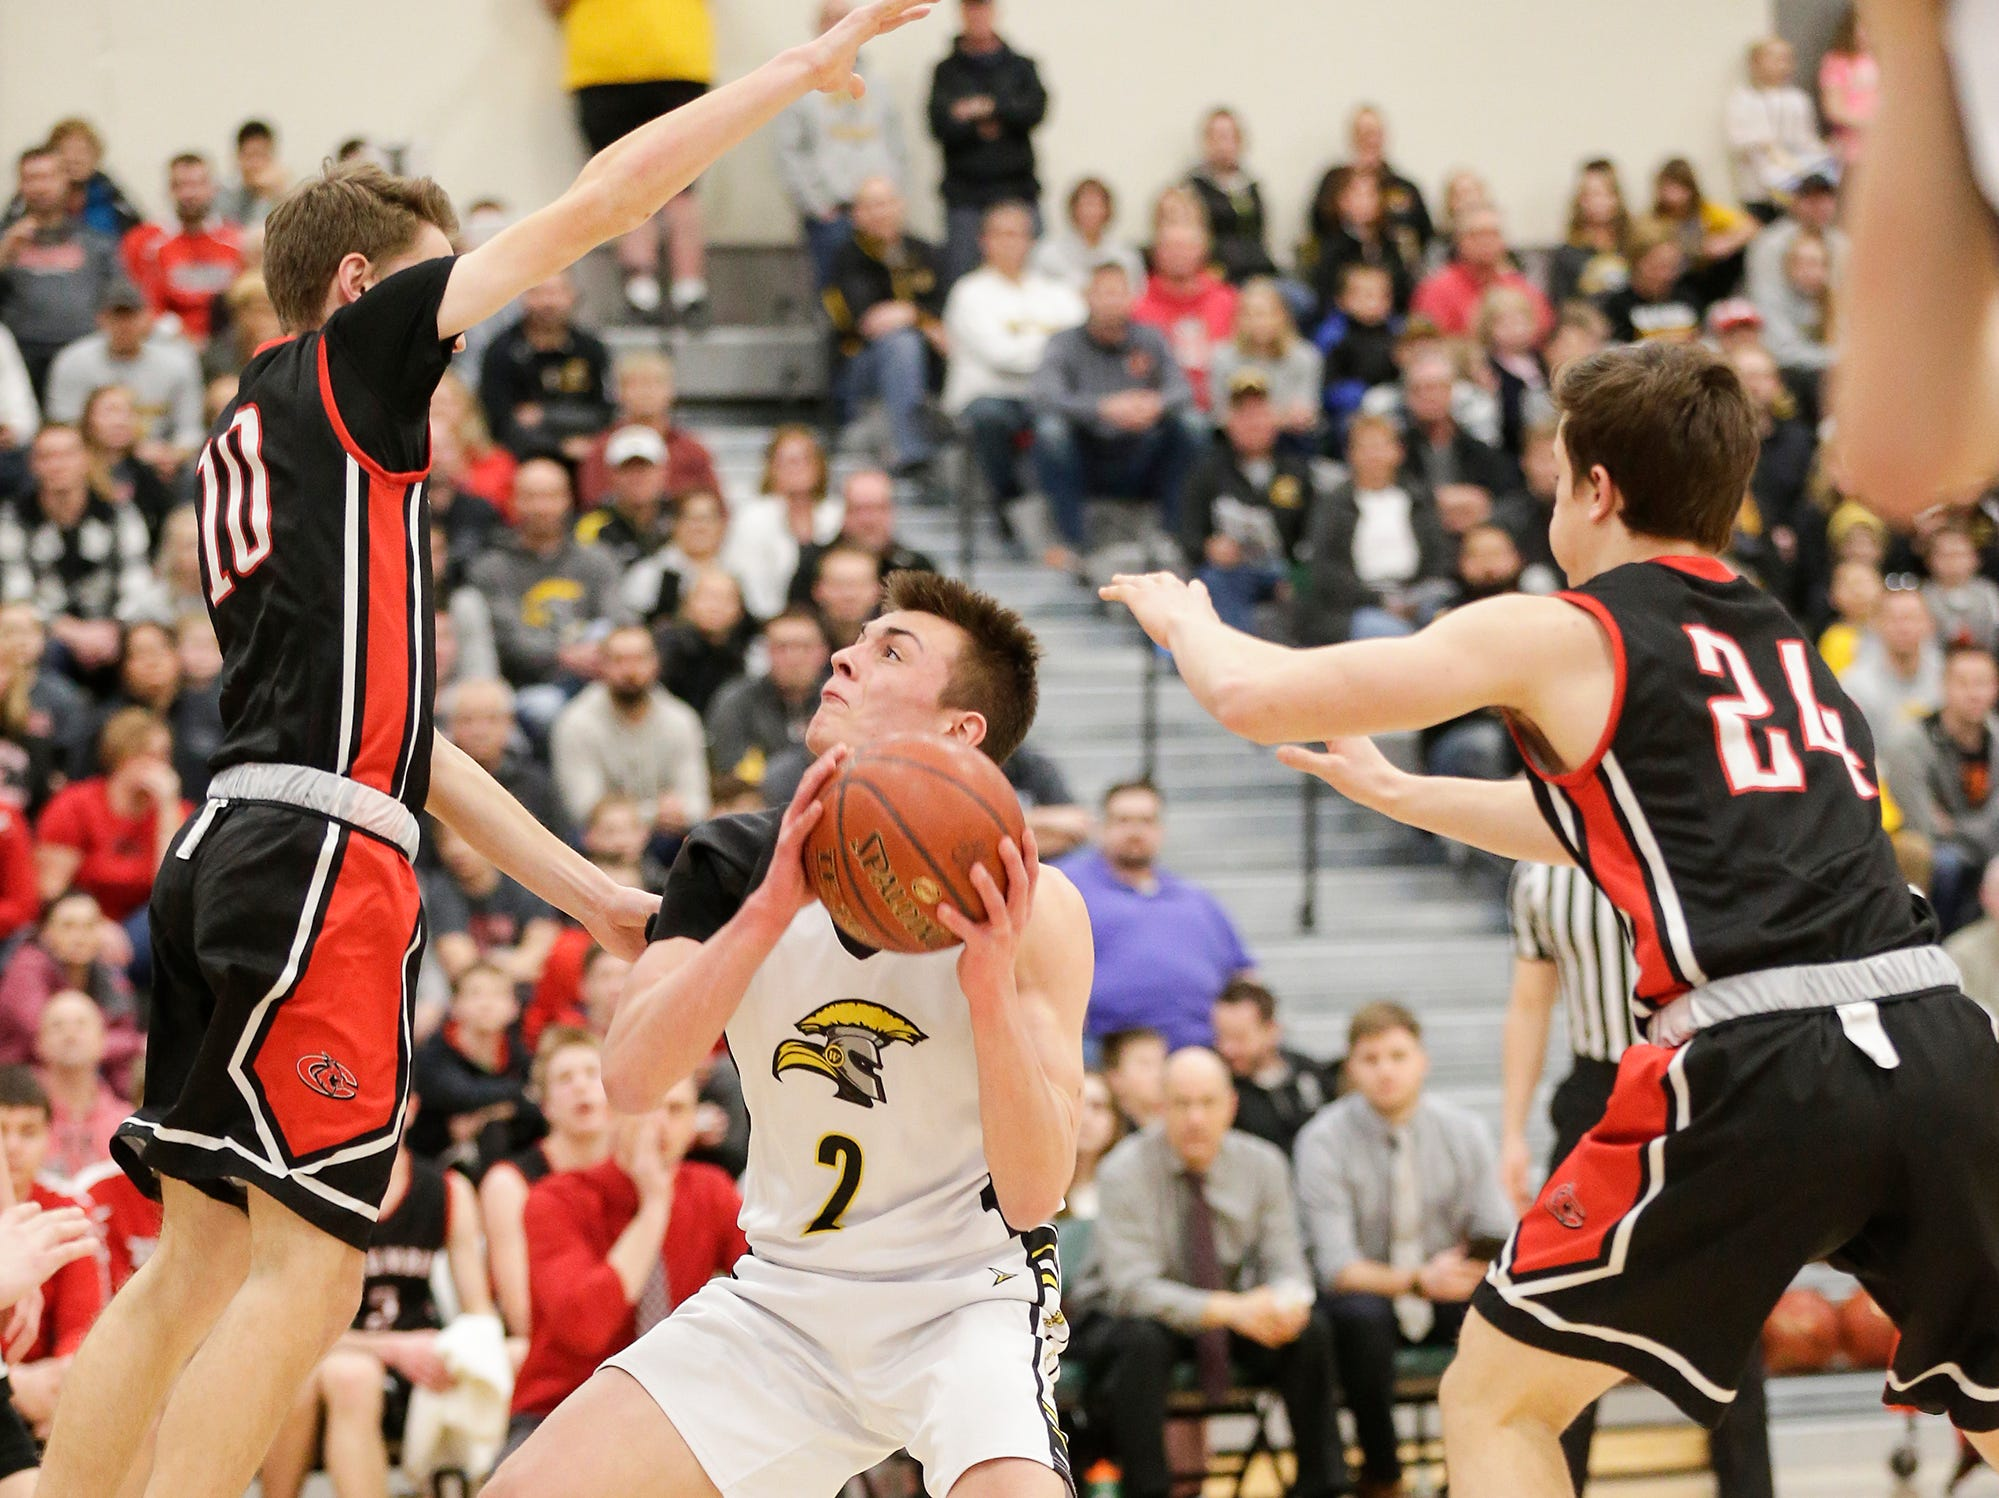 Waupun High School boys basketball's Trevor VandeZande (2) works against Columbus High School's Adam Zahn (10) and Caden Brunell (24) during their WIAA division 3 sectional semi-final game Thursday, March 7, 2019 in Beaver Dam, Wis. Waupun won the game 79-36. Doug Raflik/USA TODAY NETWORK-Wisconsin